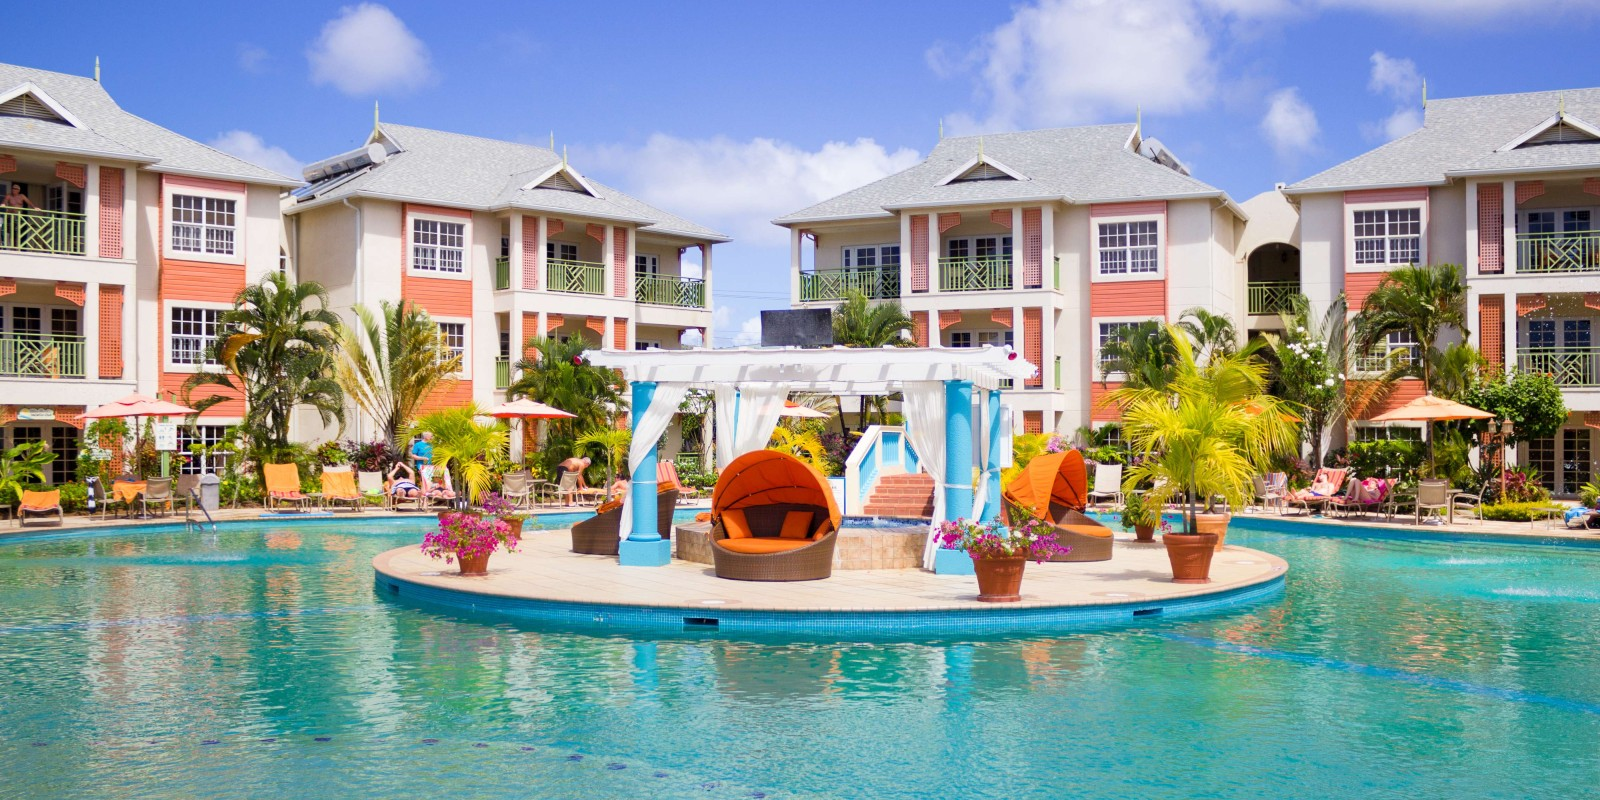 Travel blog: How To Experience 3 Incredible St Lucia Hotels For The Price Of One With Bay Gardens Resorts